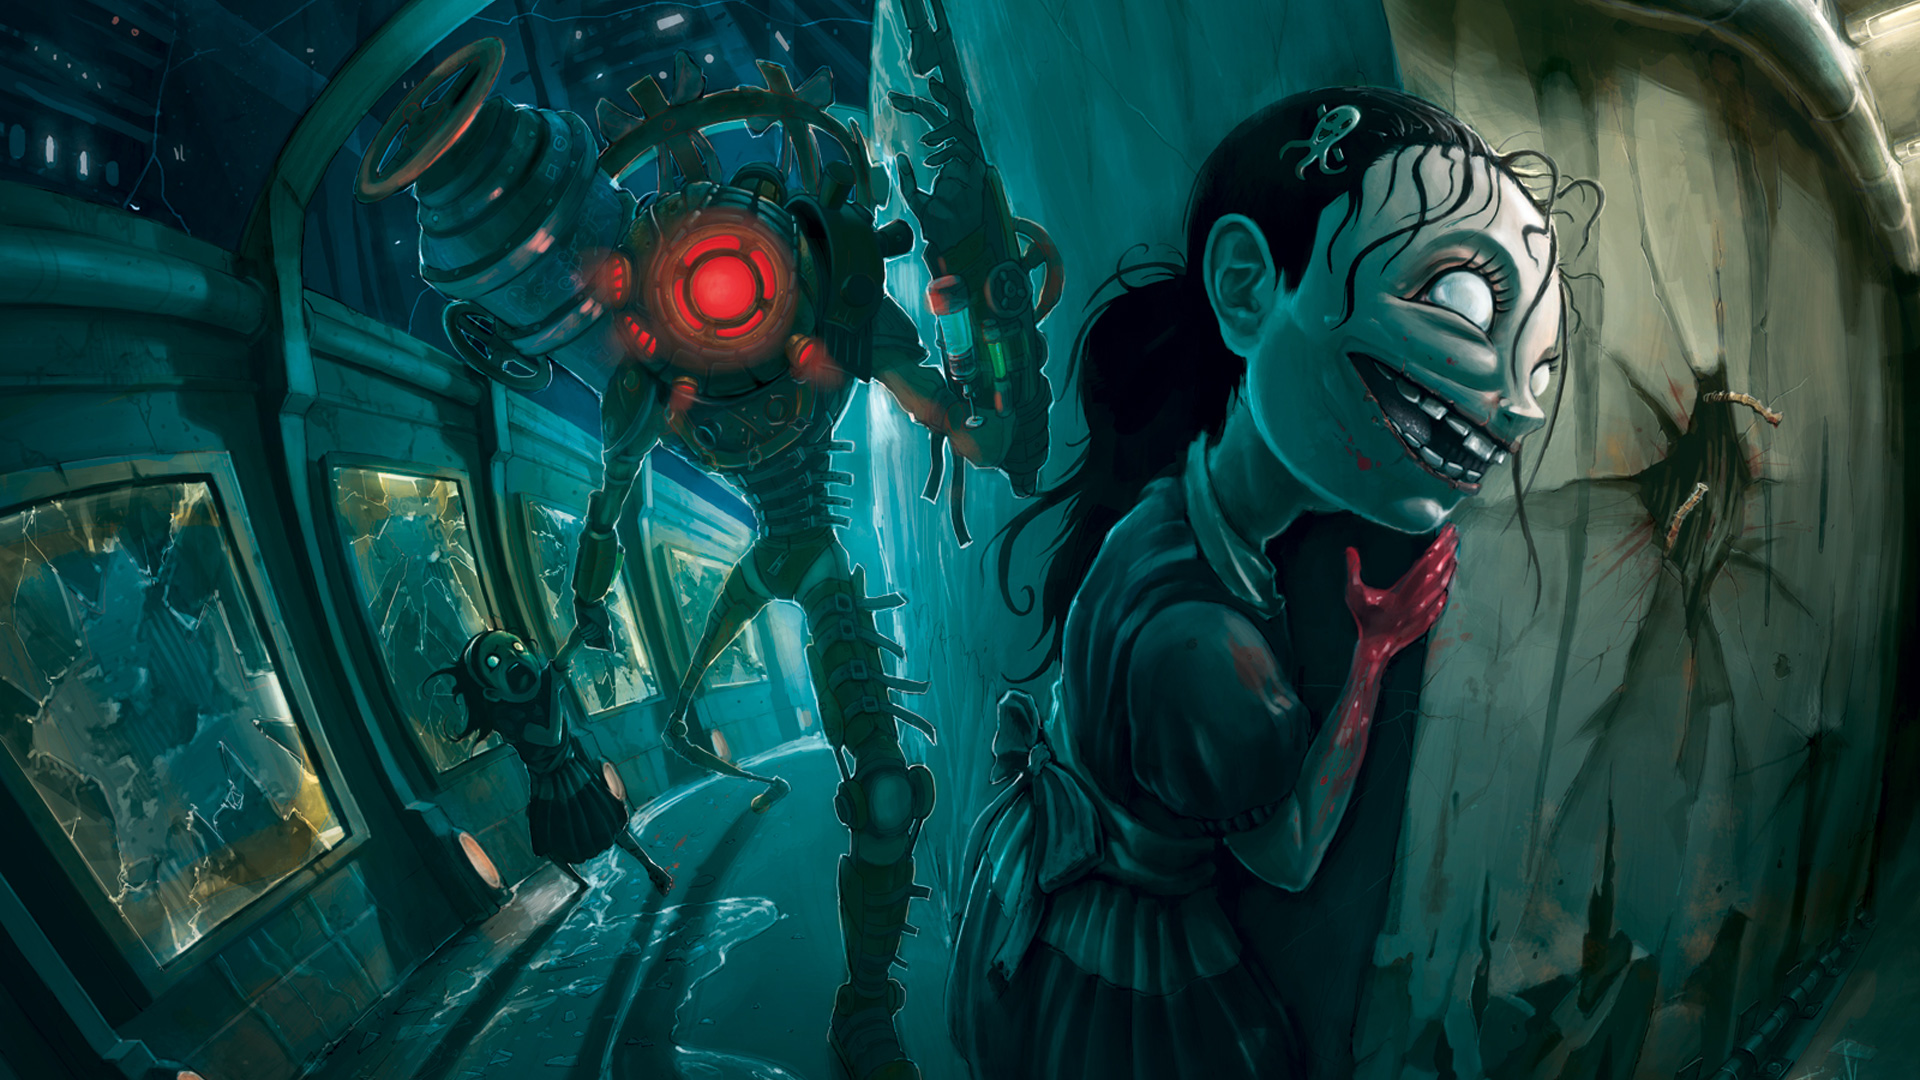 Free Bioshock 2 Wallpaper in 1920x1080